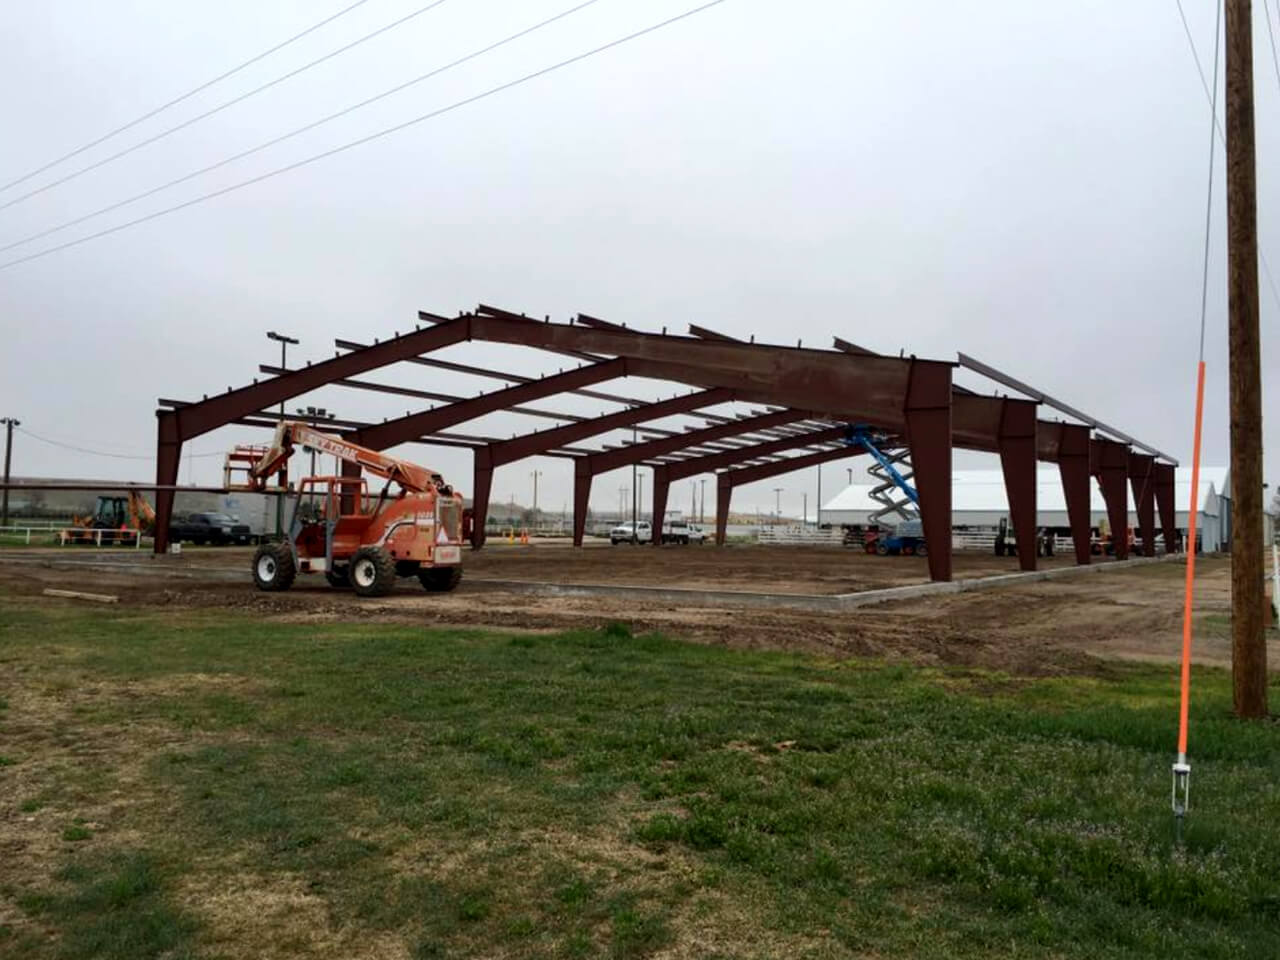 Cheyenne County Pavilion being built